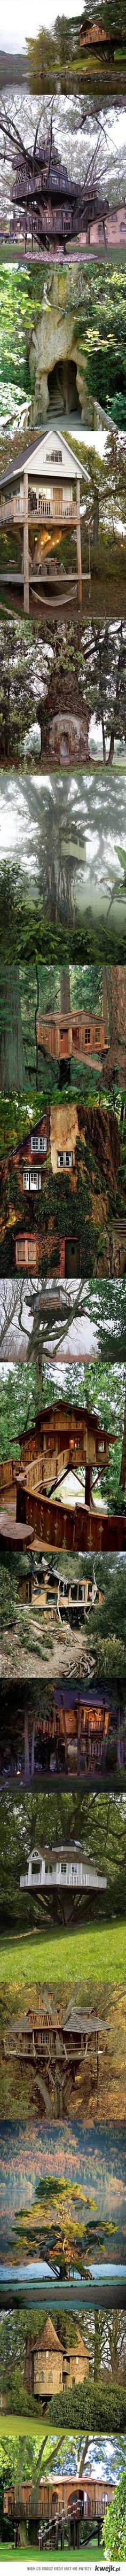 Epic tree-houses for grown-ups...WOW